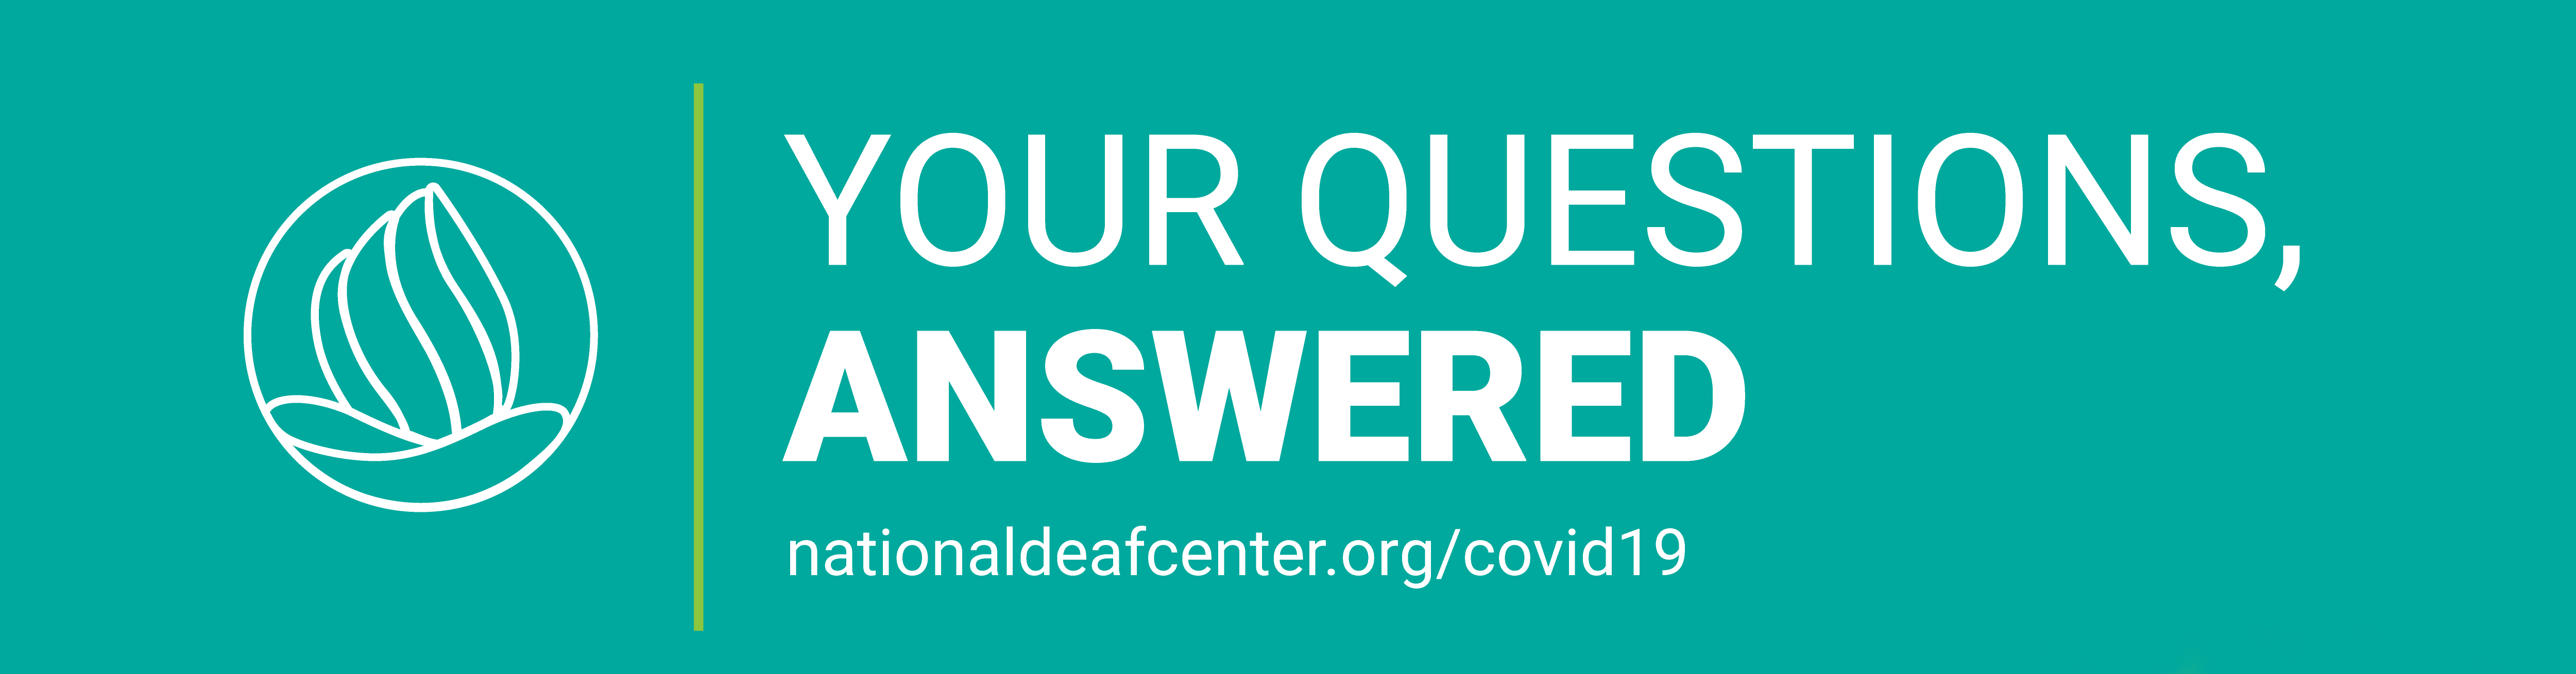 "Teal background with NDC logo on left and ""Your Questions, Answered. nationaldeafcenter/covid19"" on the right."